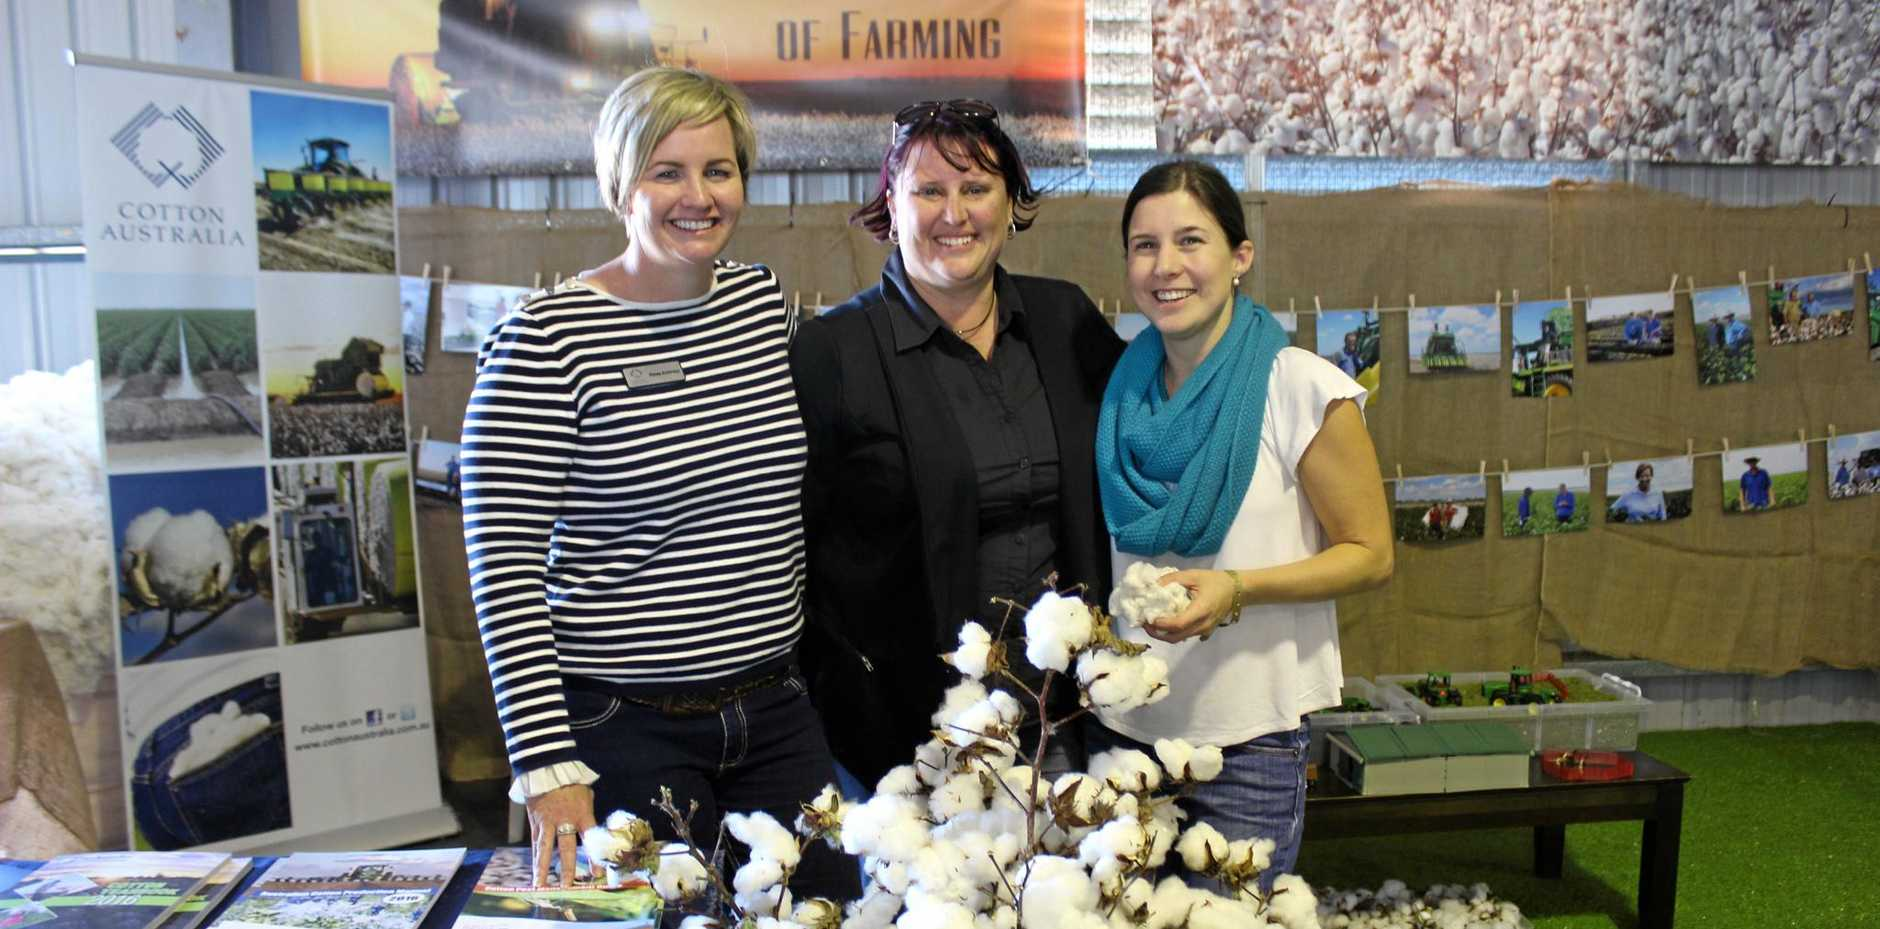 PICKING TIME: Cotton Australia central Queensland regional manager Renee Anderson, DAF technical officer Gail Spargo and local cotton grower Beth Burnett show some of the season's successful crop at the Emerald Show.